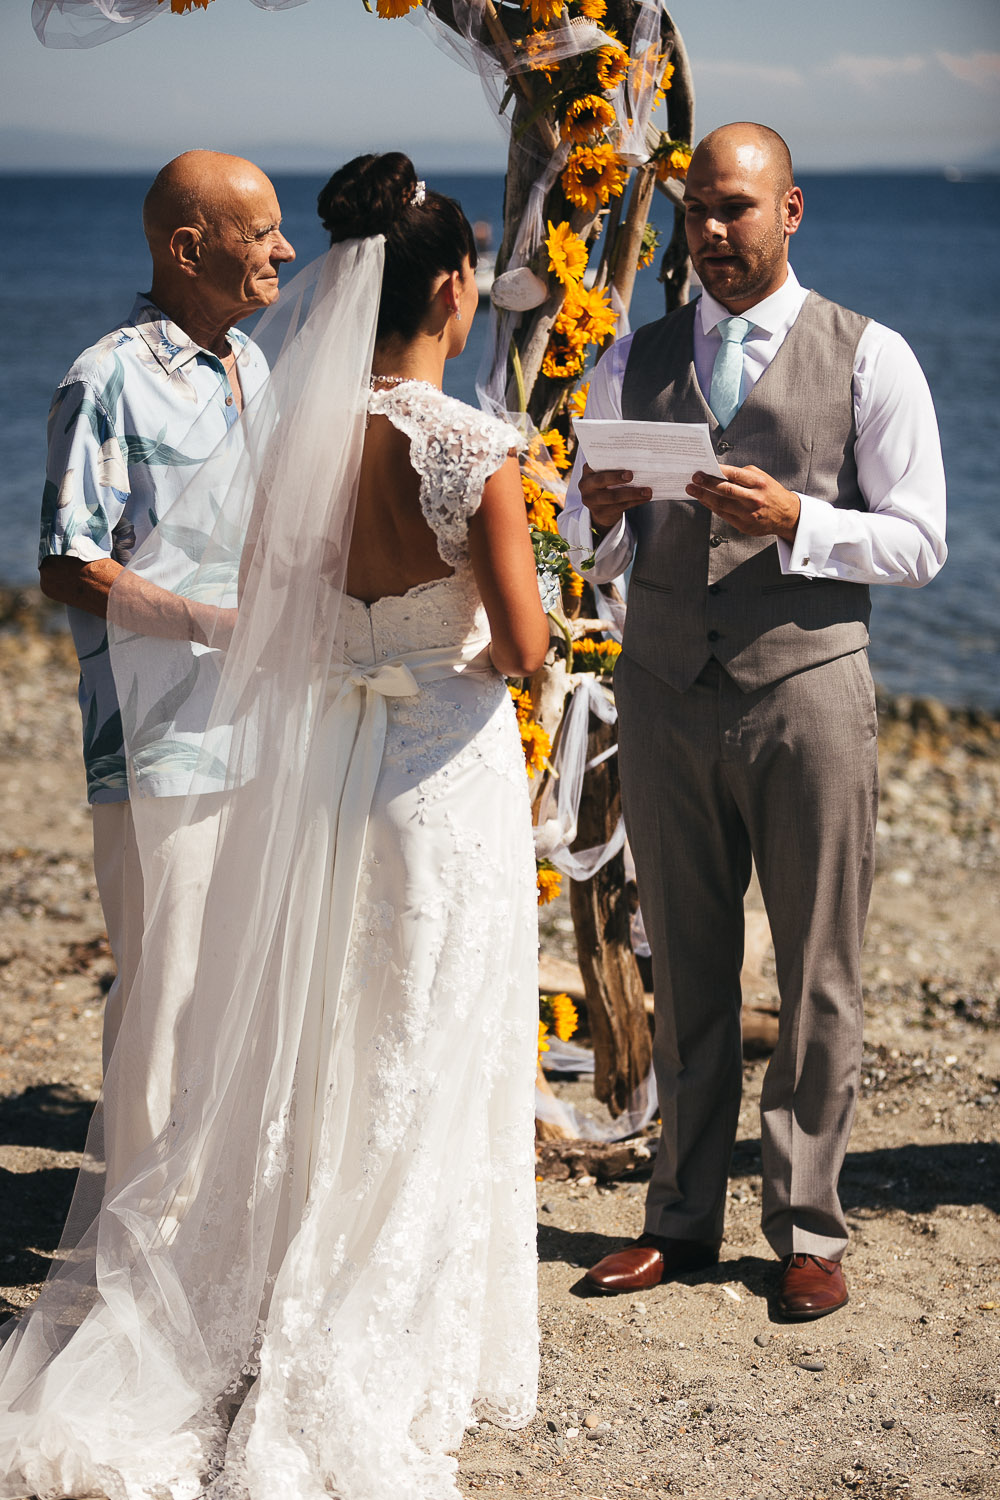 destination wedding photographer based in Vancouver